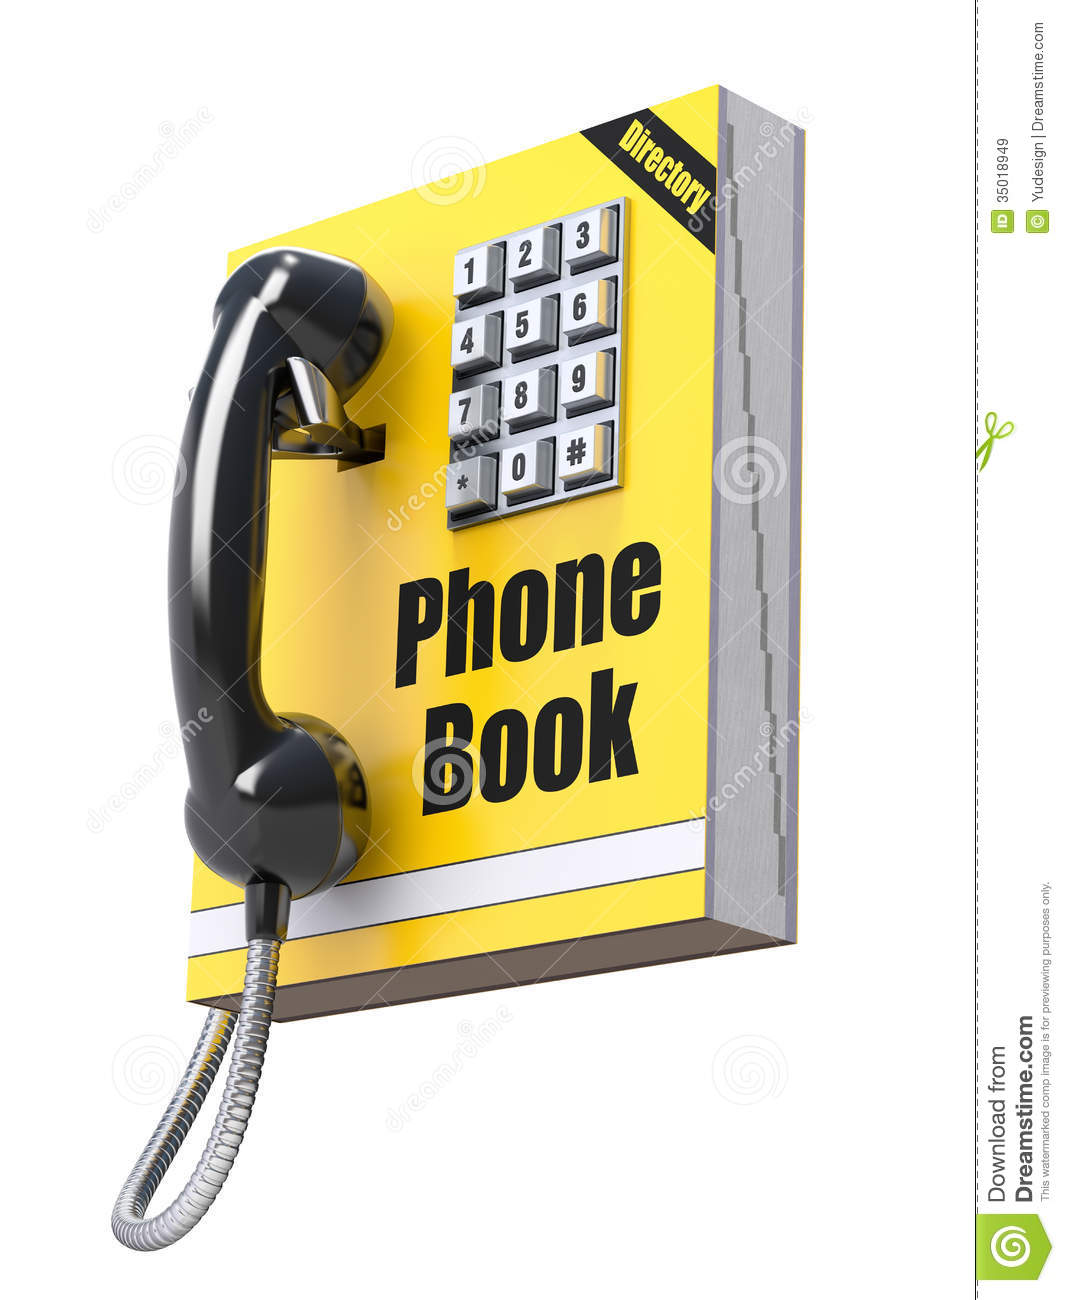 Phone Book Concept Royalty Free Stock Images.